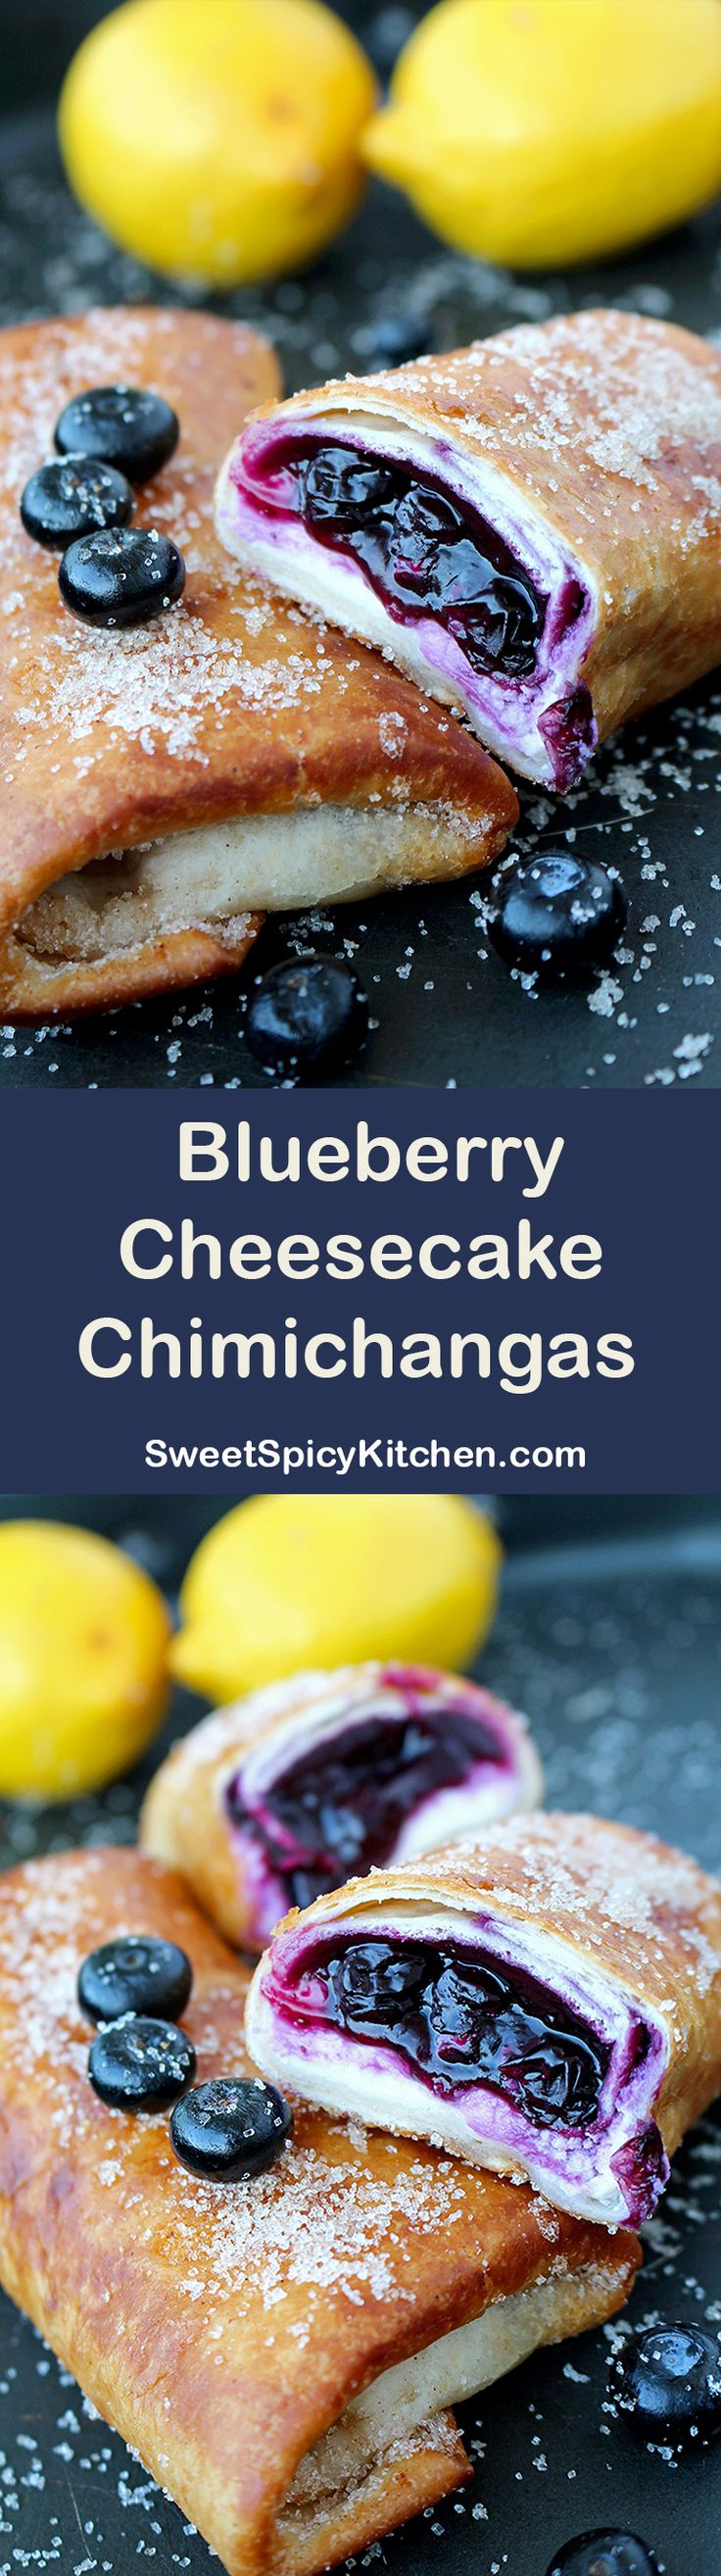 Do you like sweet chimichangas? Chimichangas with cream cheese and blueberry sauce – a recipe for perfectly tasty Blueberry Cheesecake Chimichangas. (Mexican Desert Recipes)